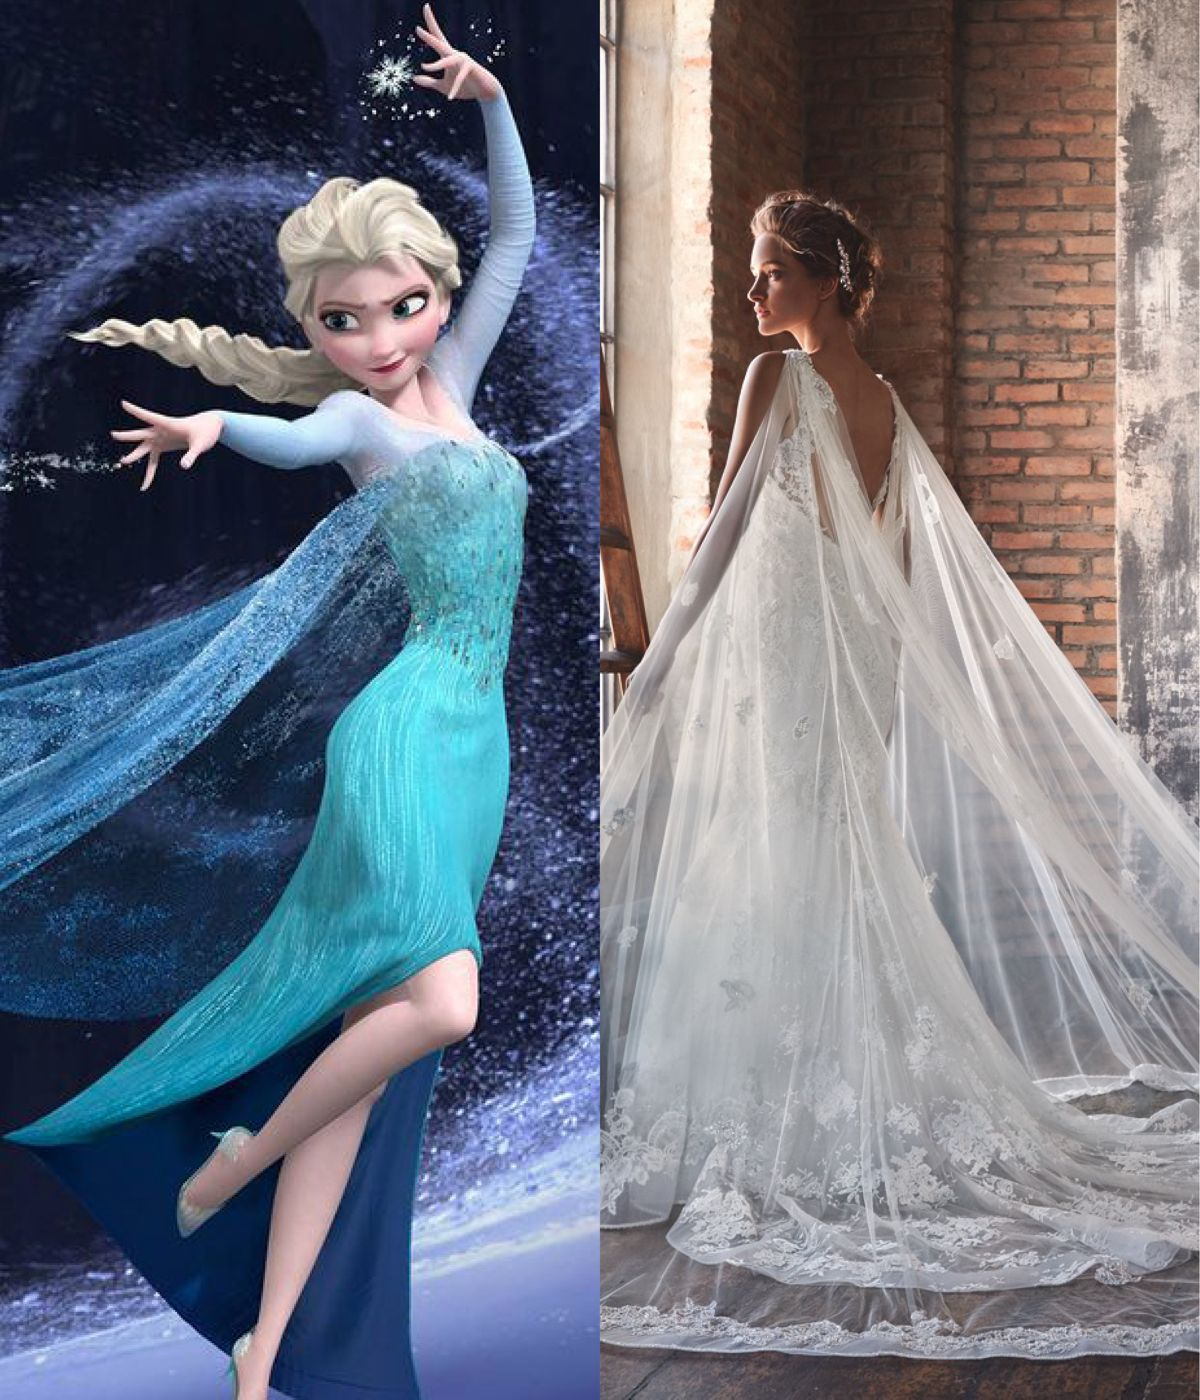 Modern wedding dresses for every Disney princess | Disney ... - photo#50